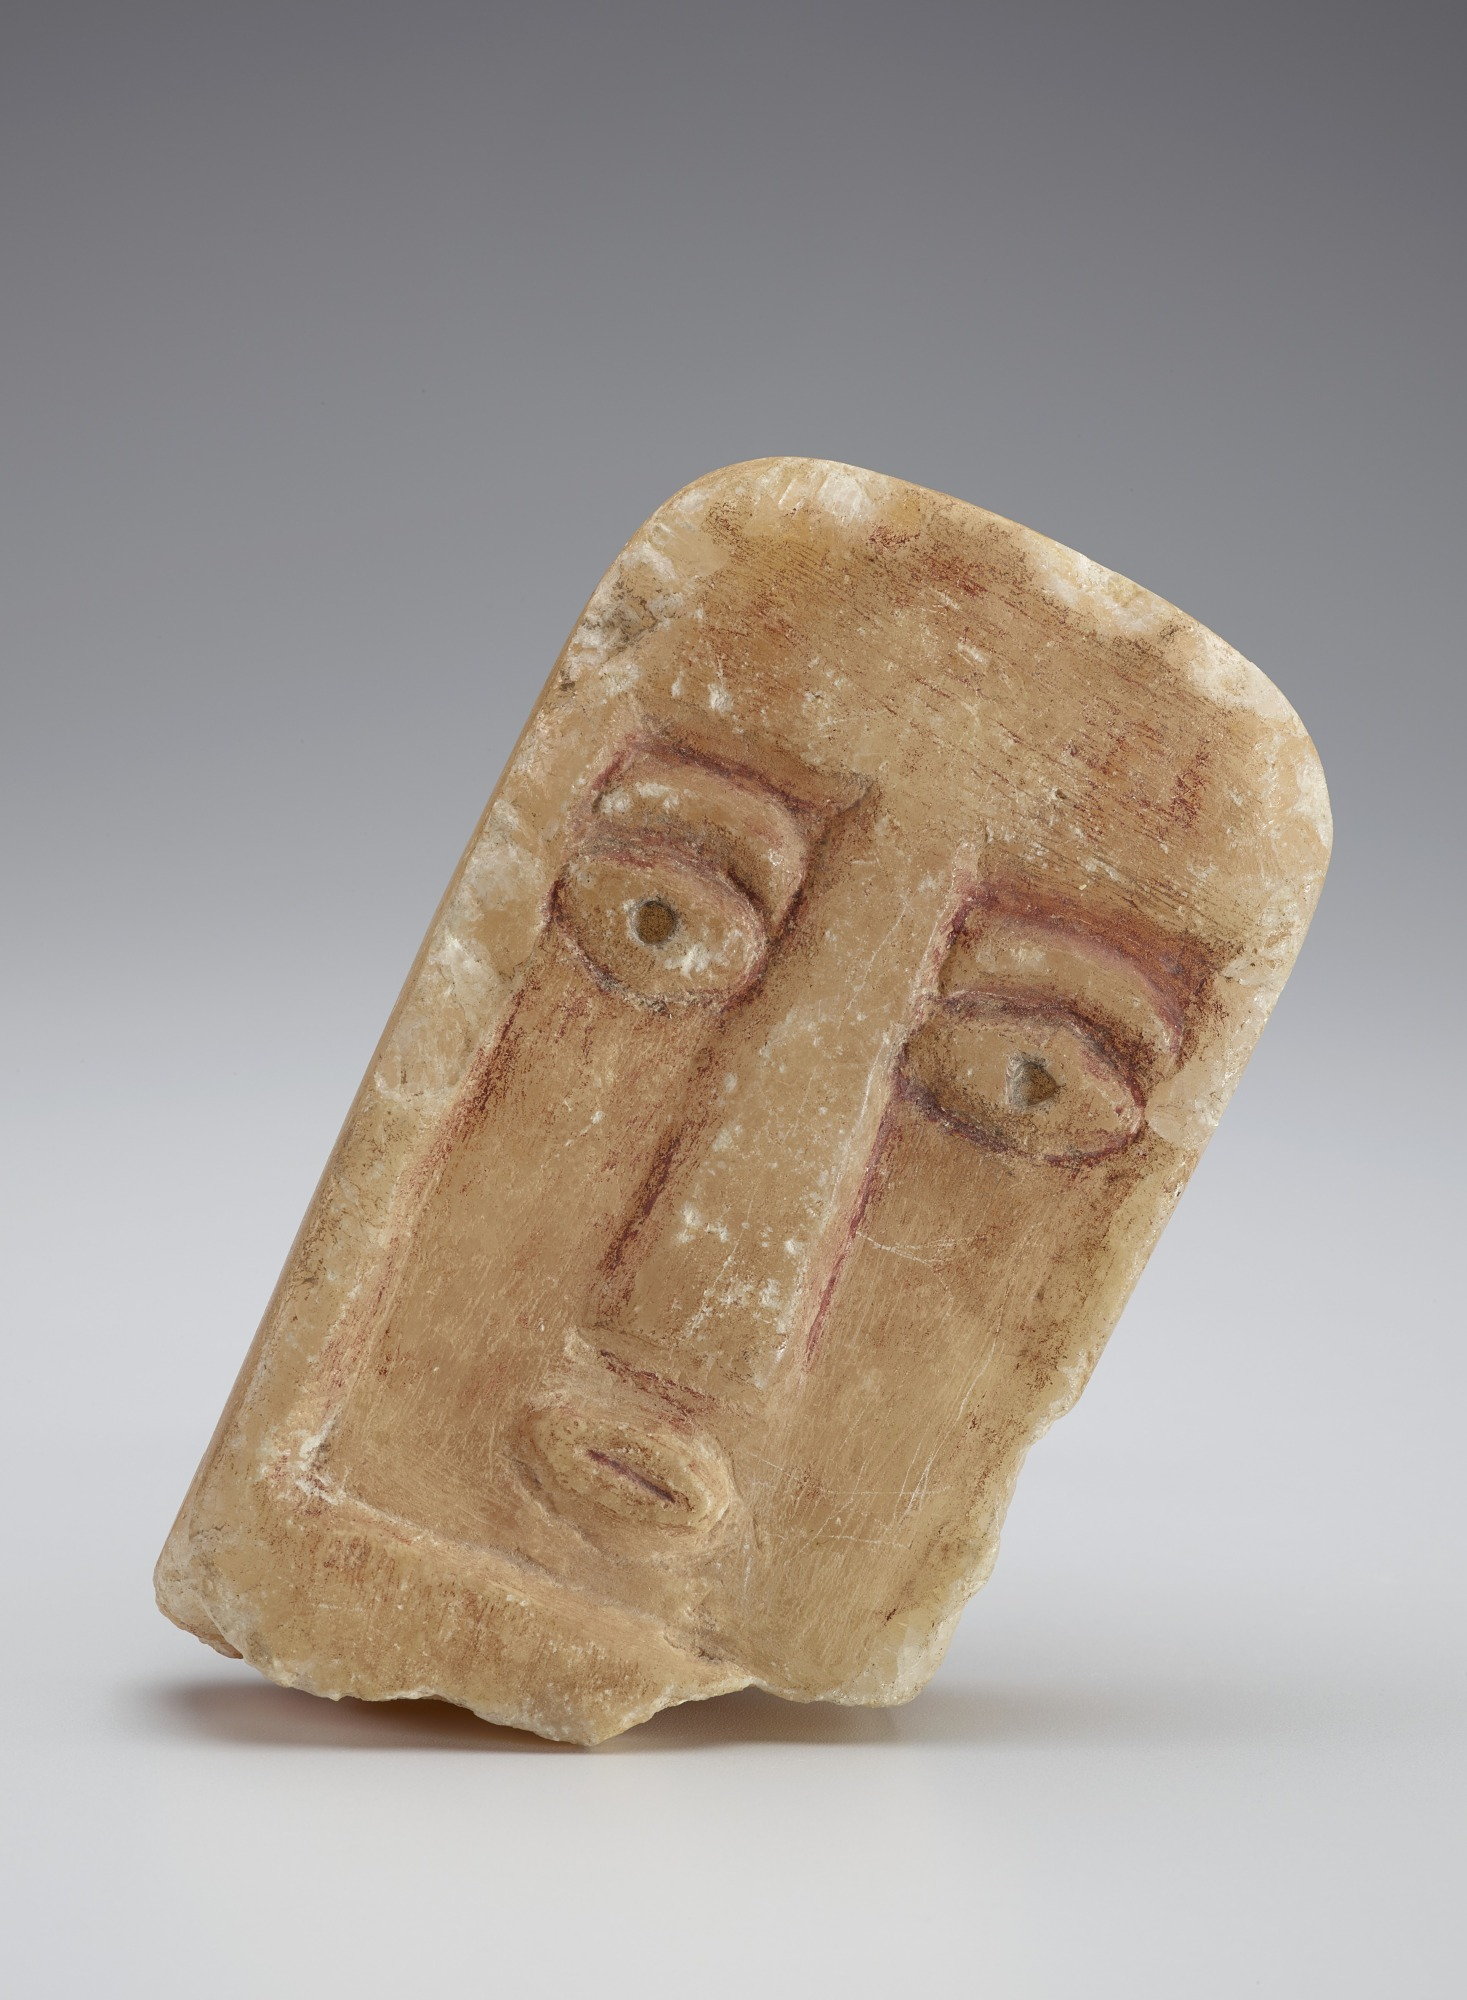 Stela fragment with human face